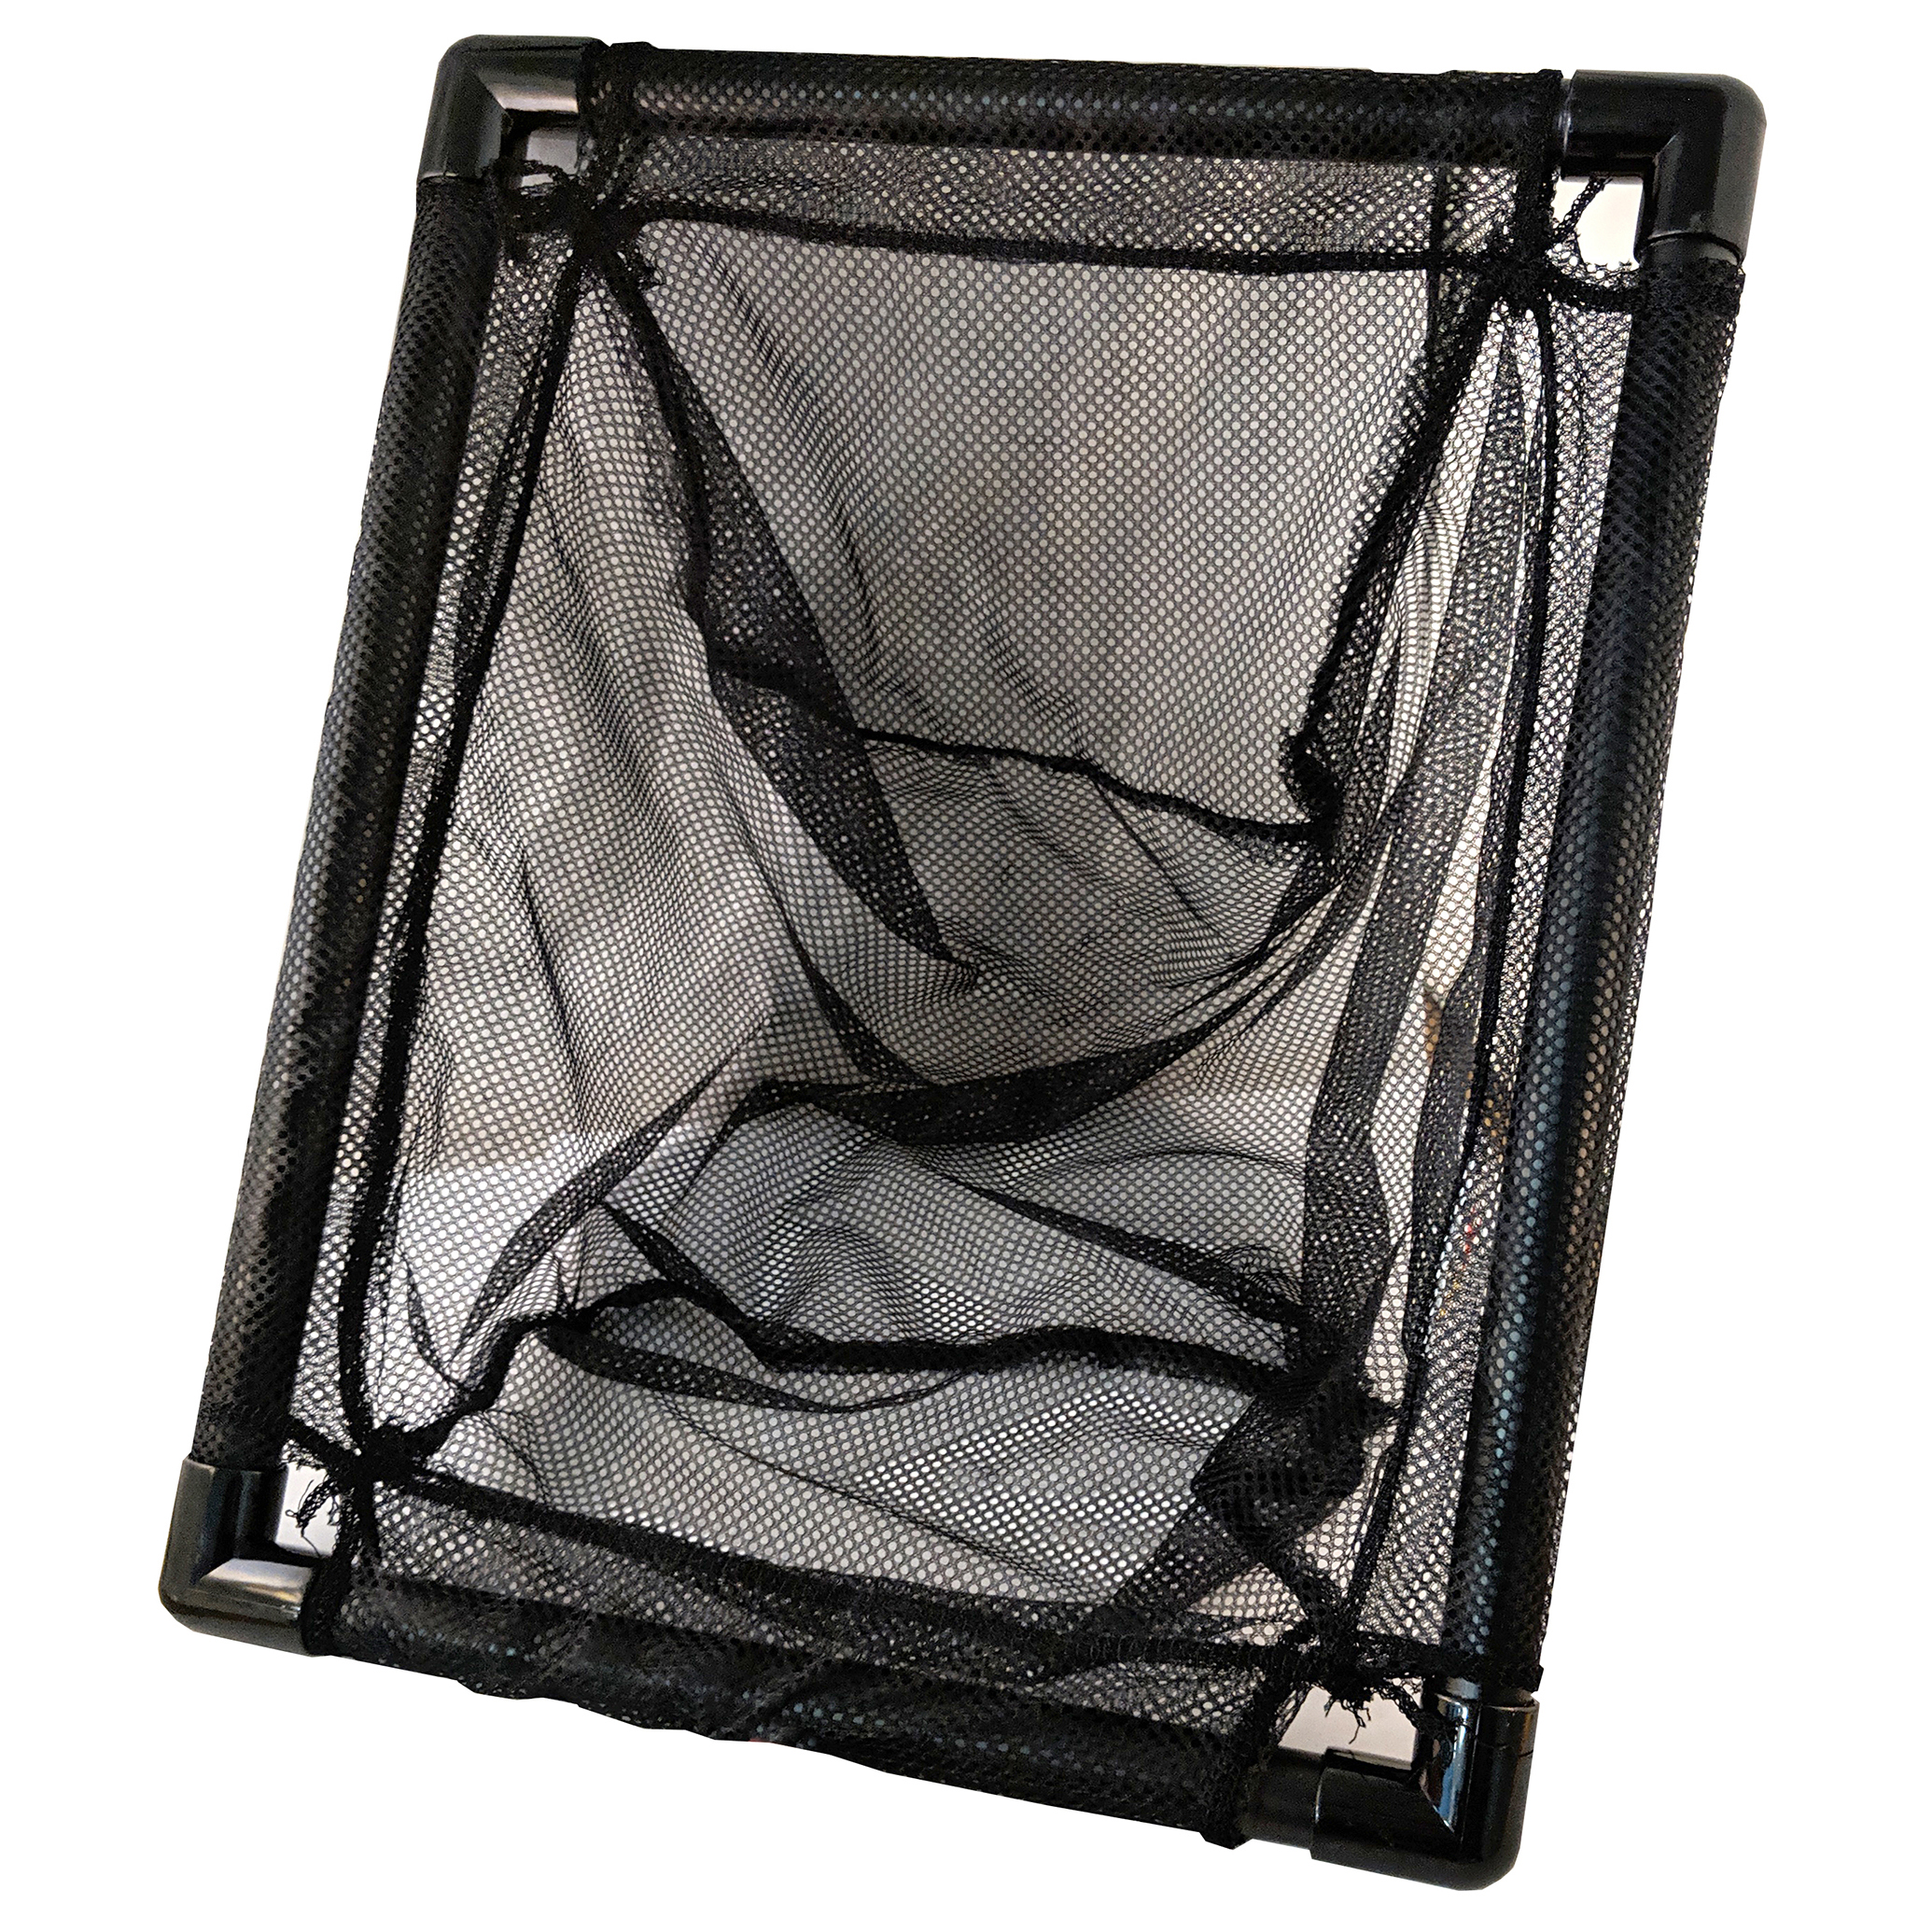 Kockney koi floating net baskets fish fry quarantine for Koi quarantine pond